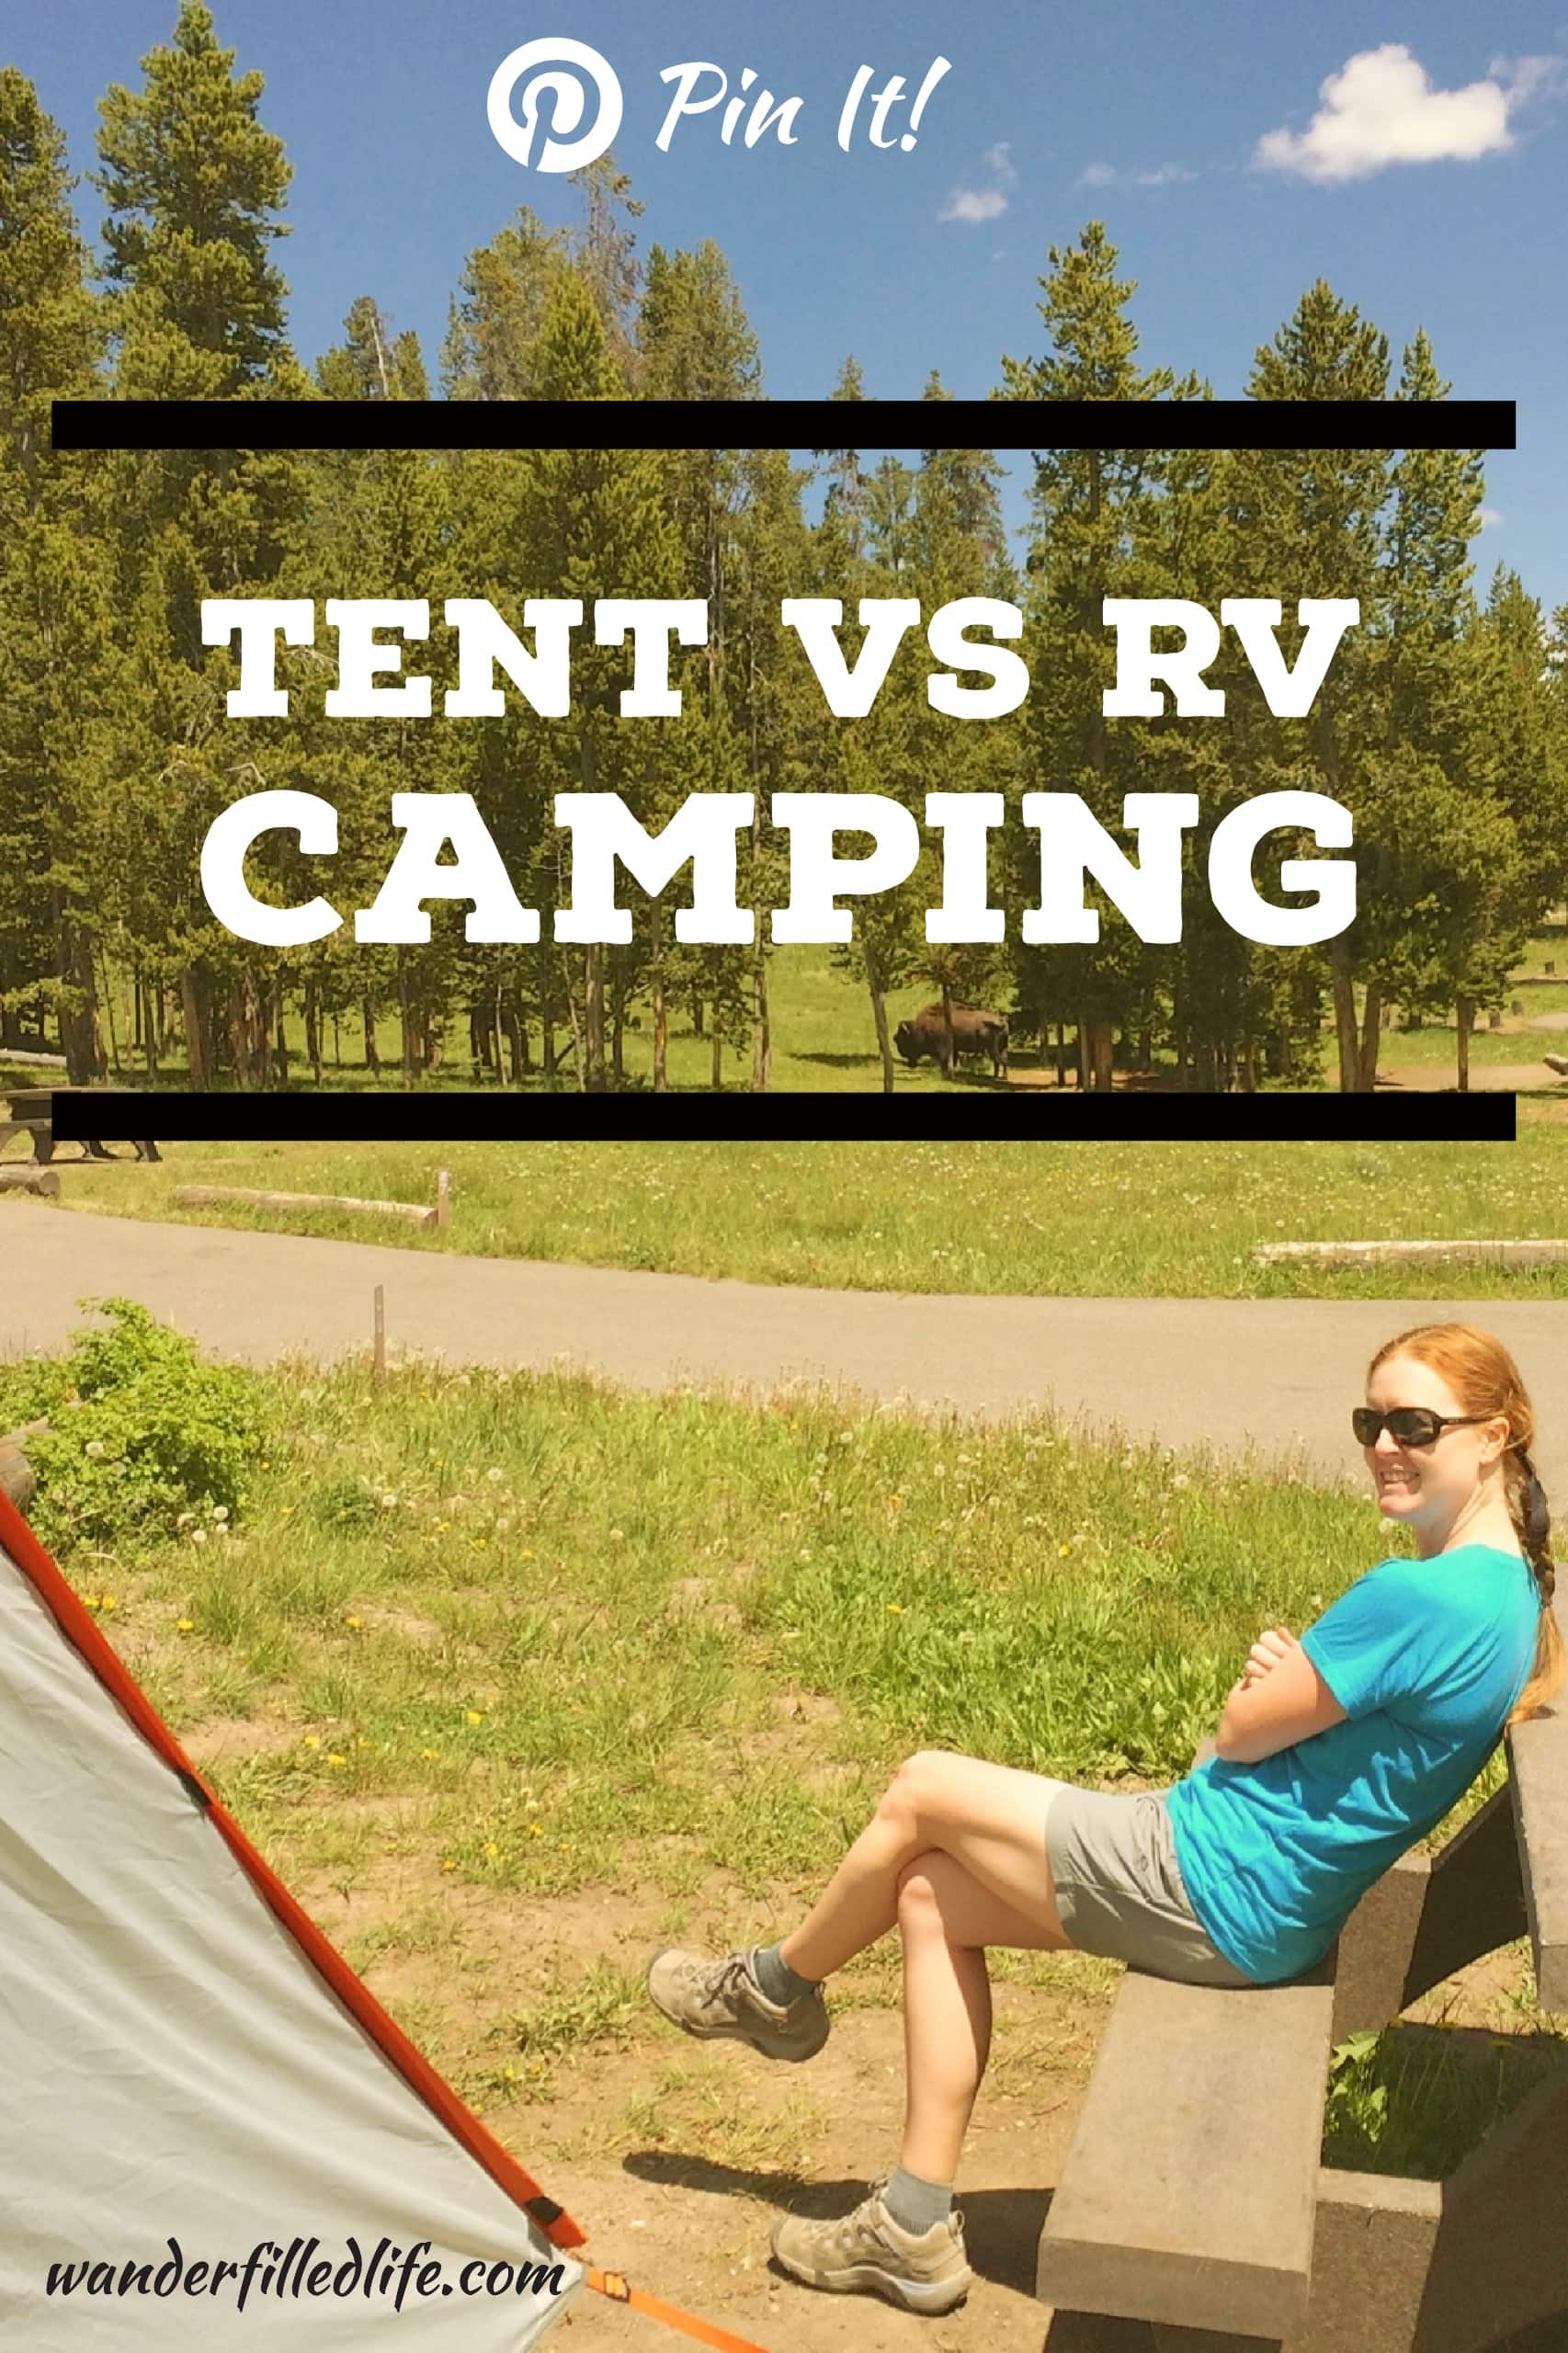 Having done long road trips camping in a tent versus camping in a RV, we look at the benefits of both ways to stay in a campground.